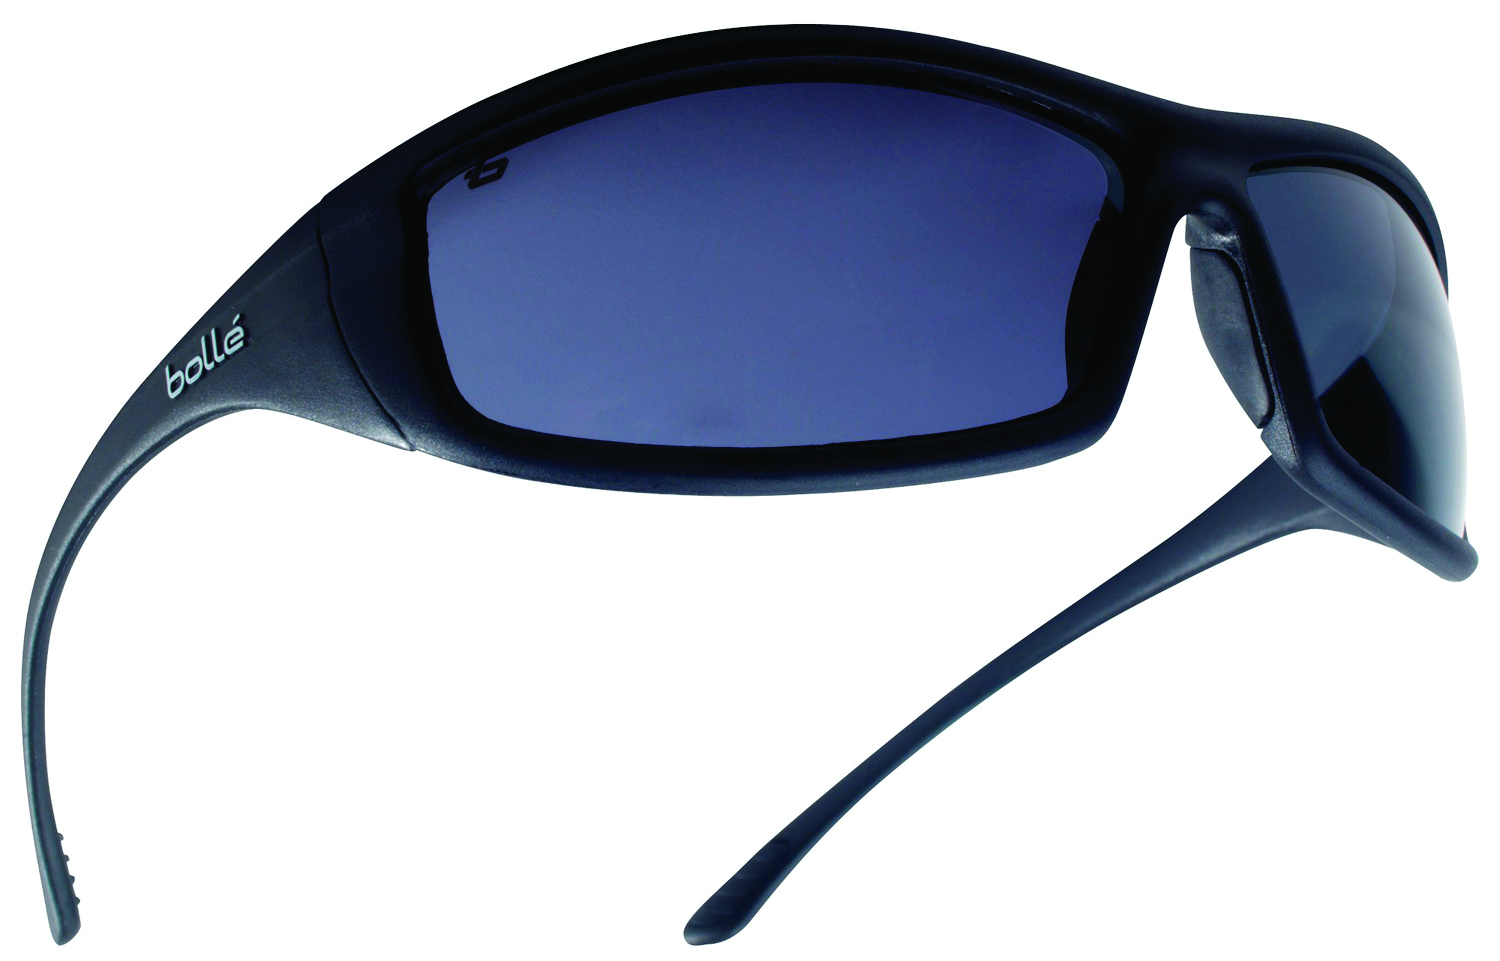 40064 - Solis Safety Glasses-Shiny Black - Blue Flash Mirror Anti-Scratch Lens Coating-----UOM: 1/EA